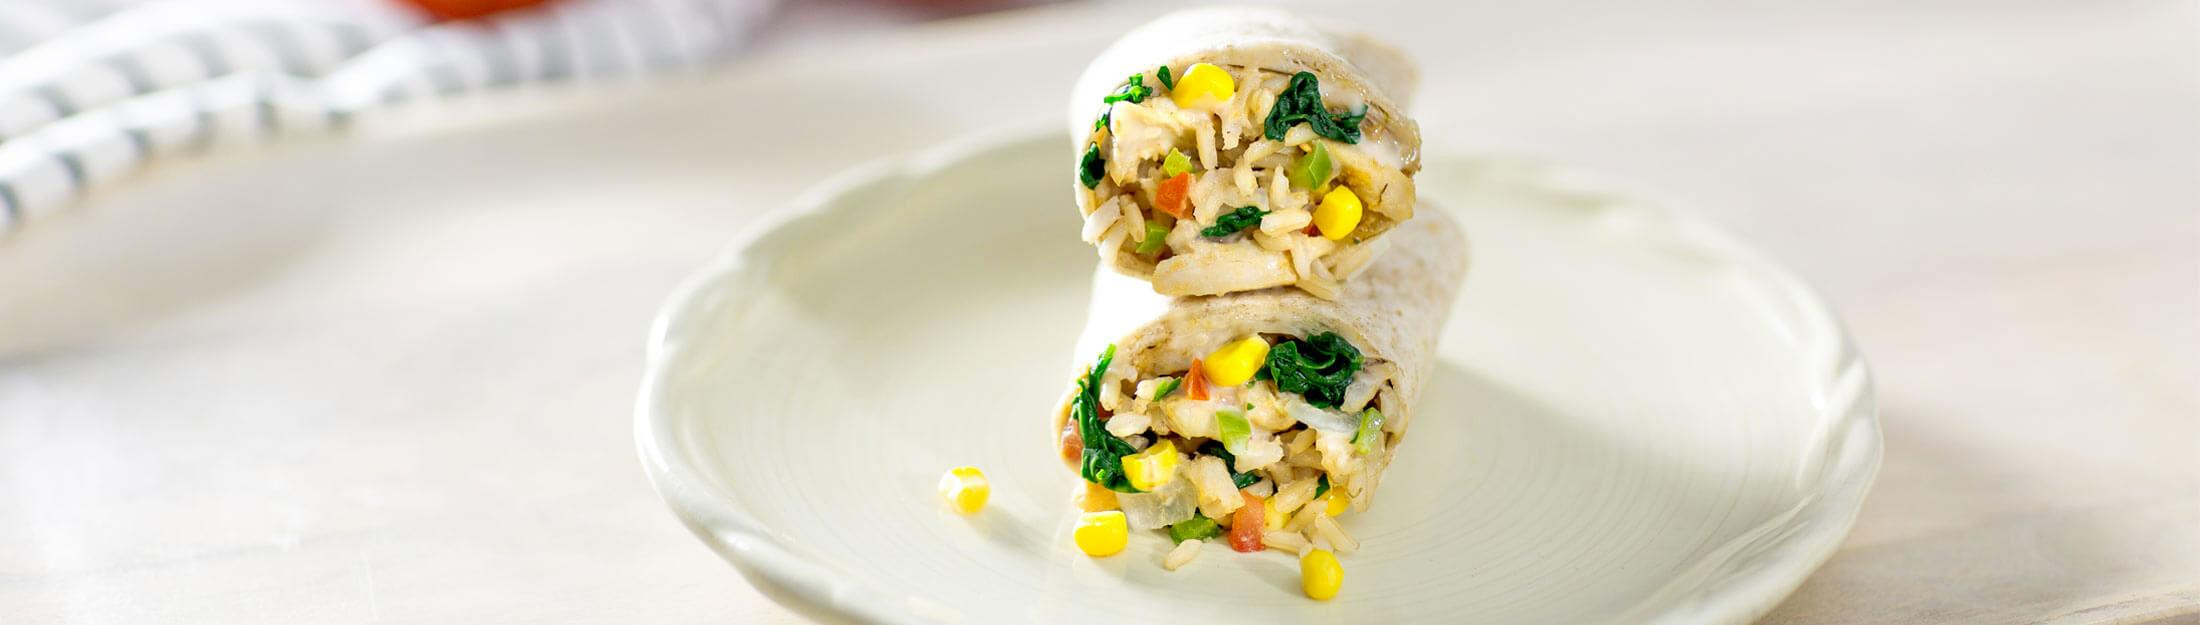 Good Food Made Simple breakfast burritos on a plate.